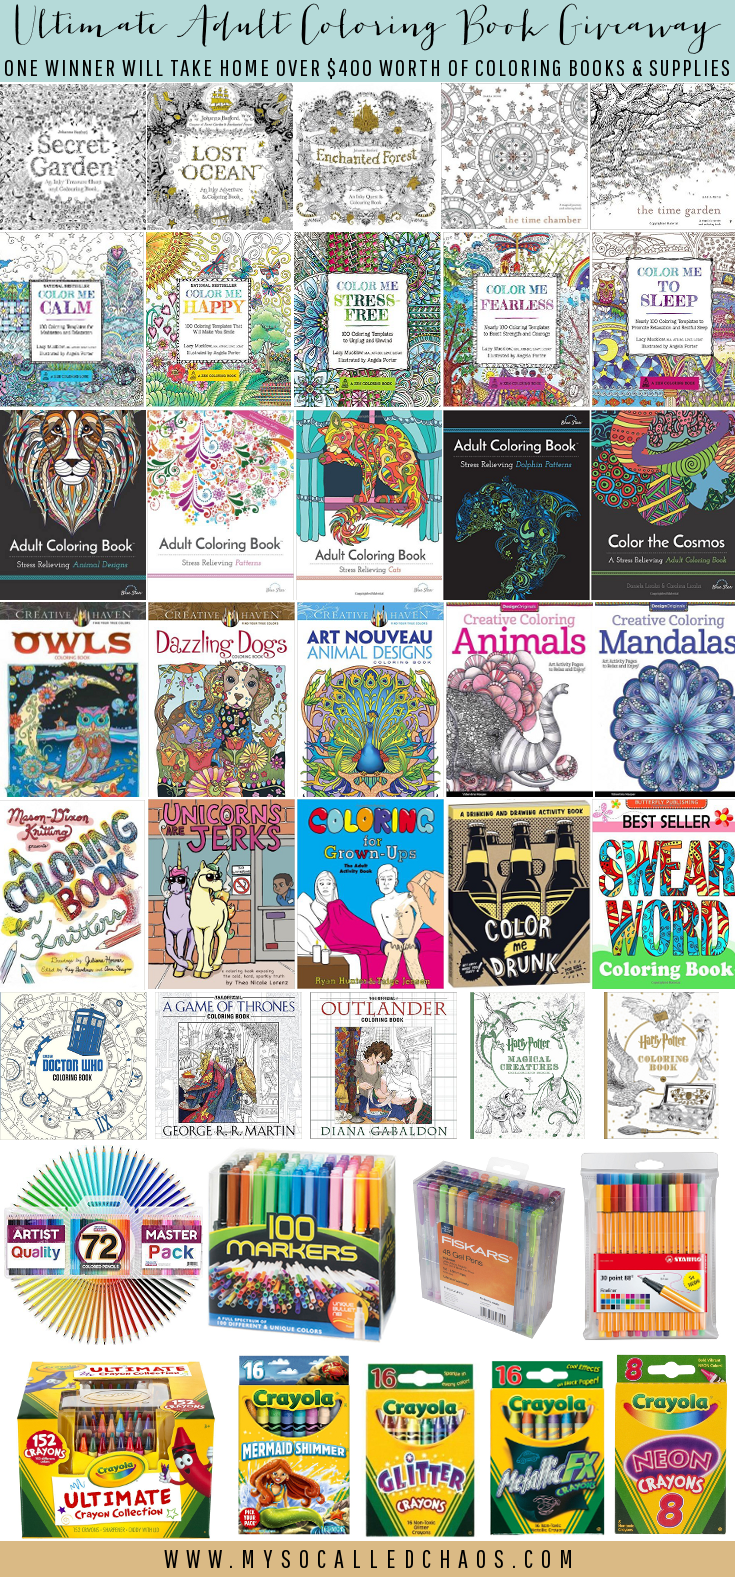 Ultimate Adult Coloring Book Giveaway - Big May Giveaway 2016